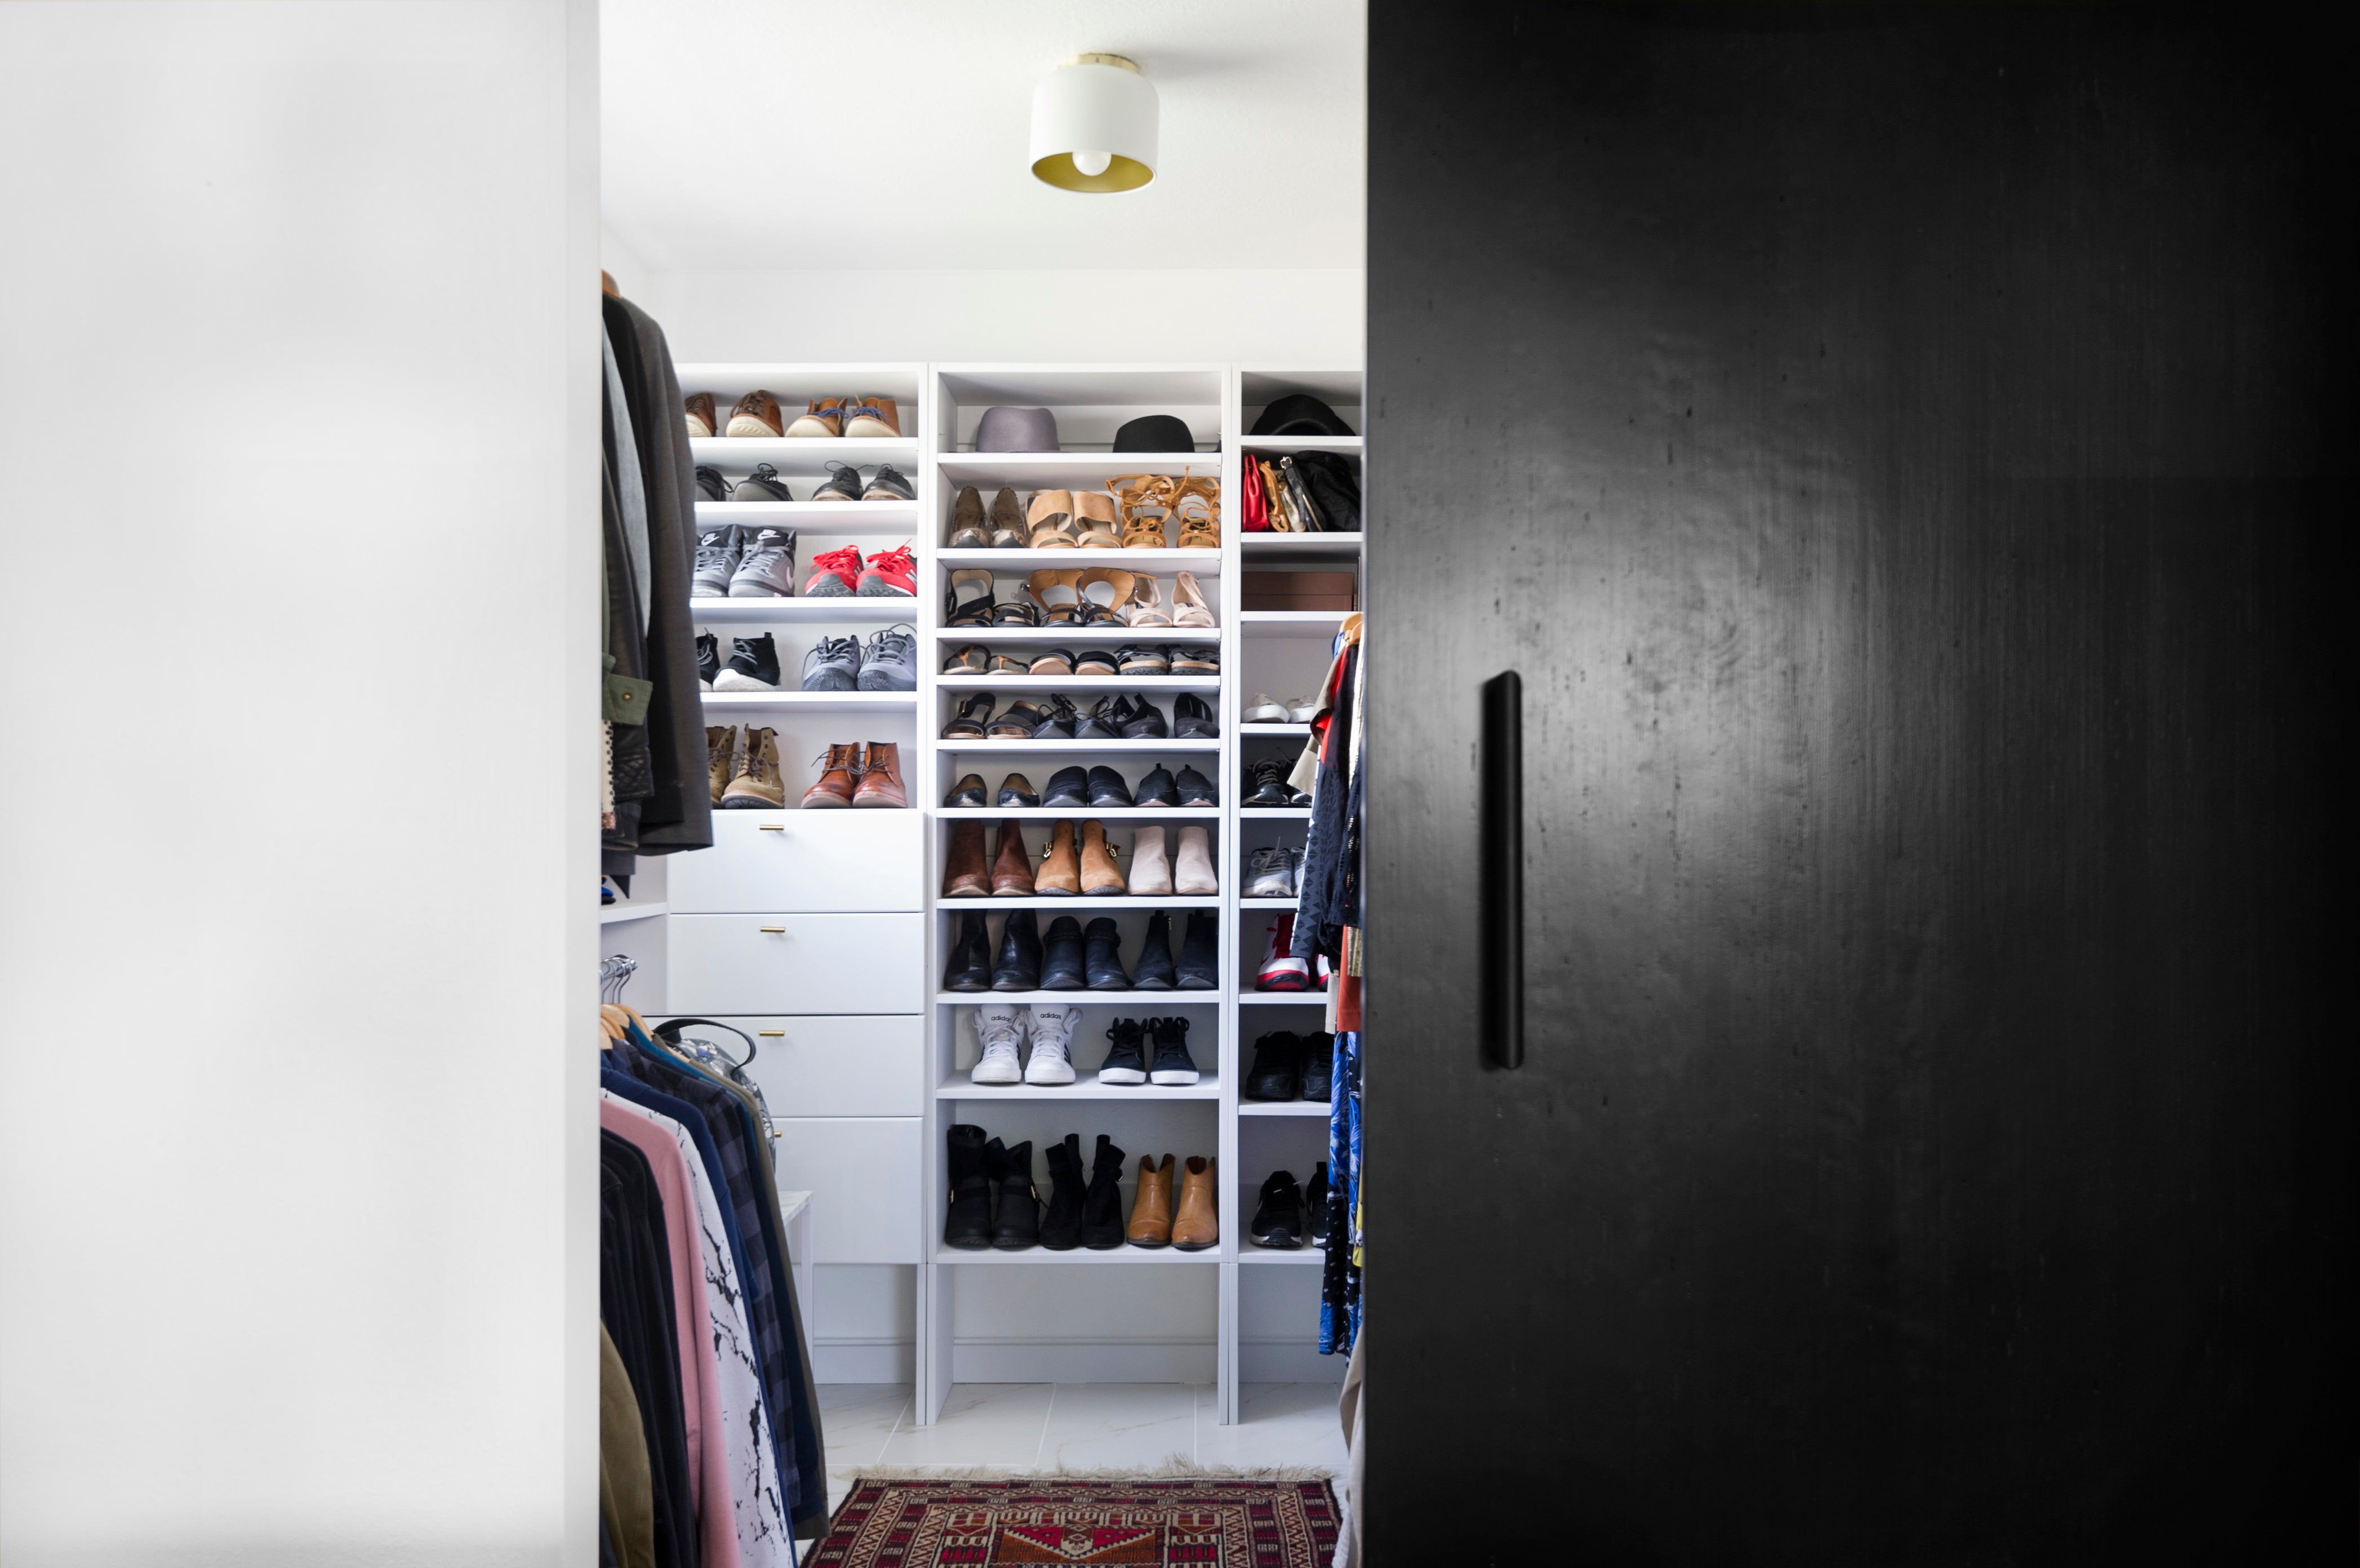 Why Use Plywood For Your DIY Closet - Modular Closets Homemade Wardrobe Plans Html on homemade storage, homemade chest, homemade cot, homemade bench, homemade clothes, homemade table, homemade closet, homemade chair, homemade bar, homemade shelf, homemade headboard,